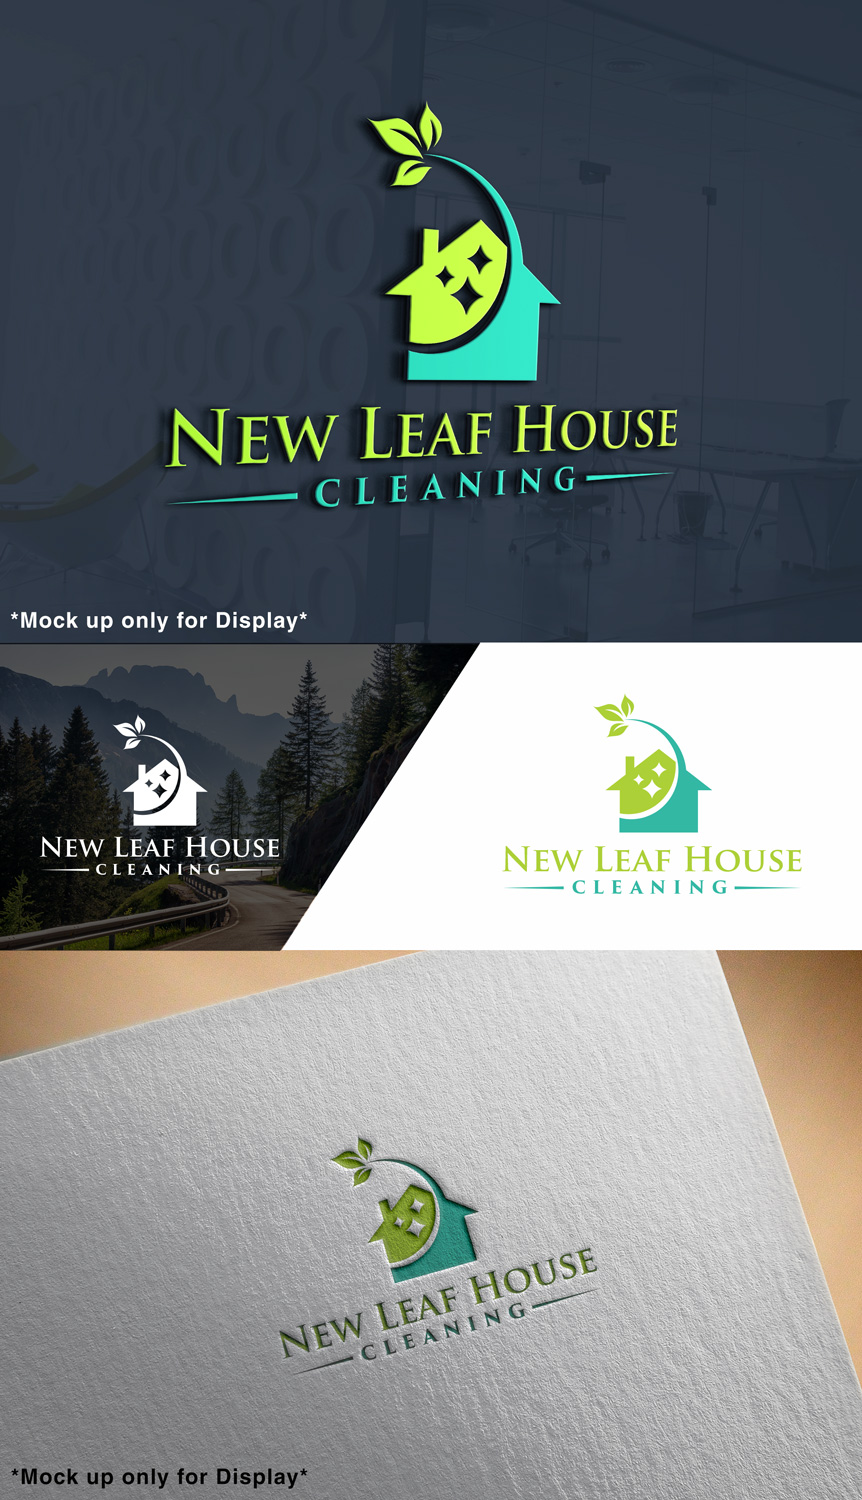 Elegant, Modern, Business Logo Design for New Leaf House Cleaning by on new yellow house, new earth house, haiku house, new stone house, new tobacco house, oasis house, new fire house, new blue house, new purple house, college house, new lake house, new tree house, nova house, amazon house, new black house, taylor house, new dog house, crown house, new psycho house, new cube house,